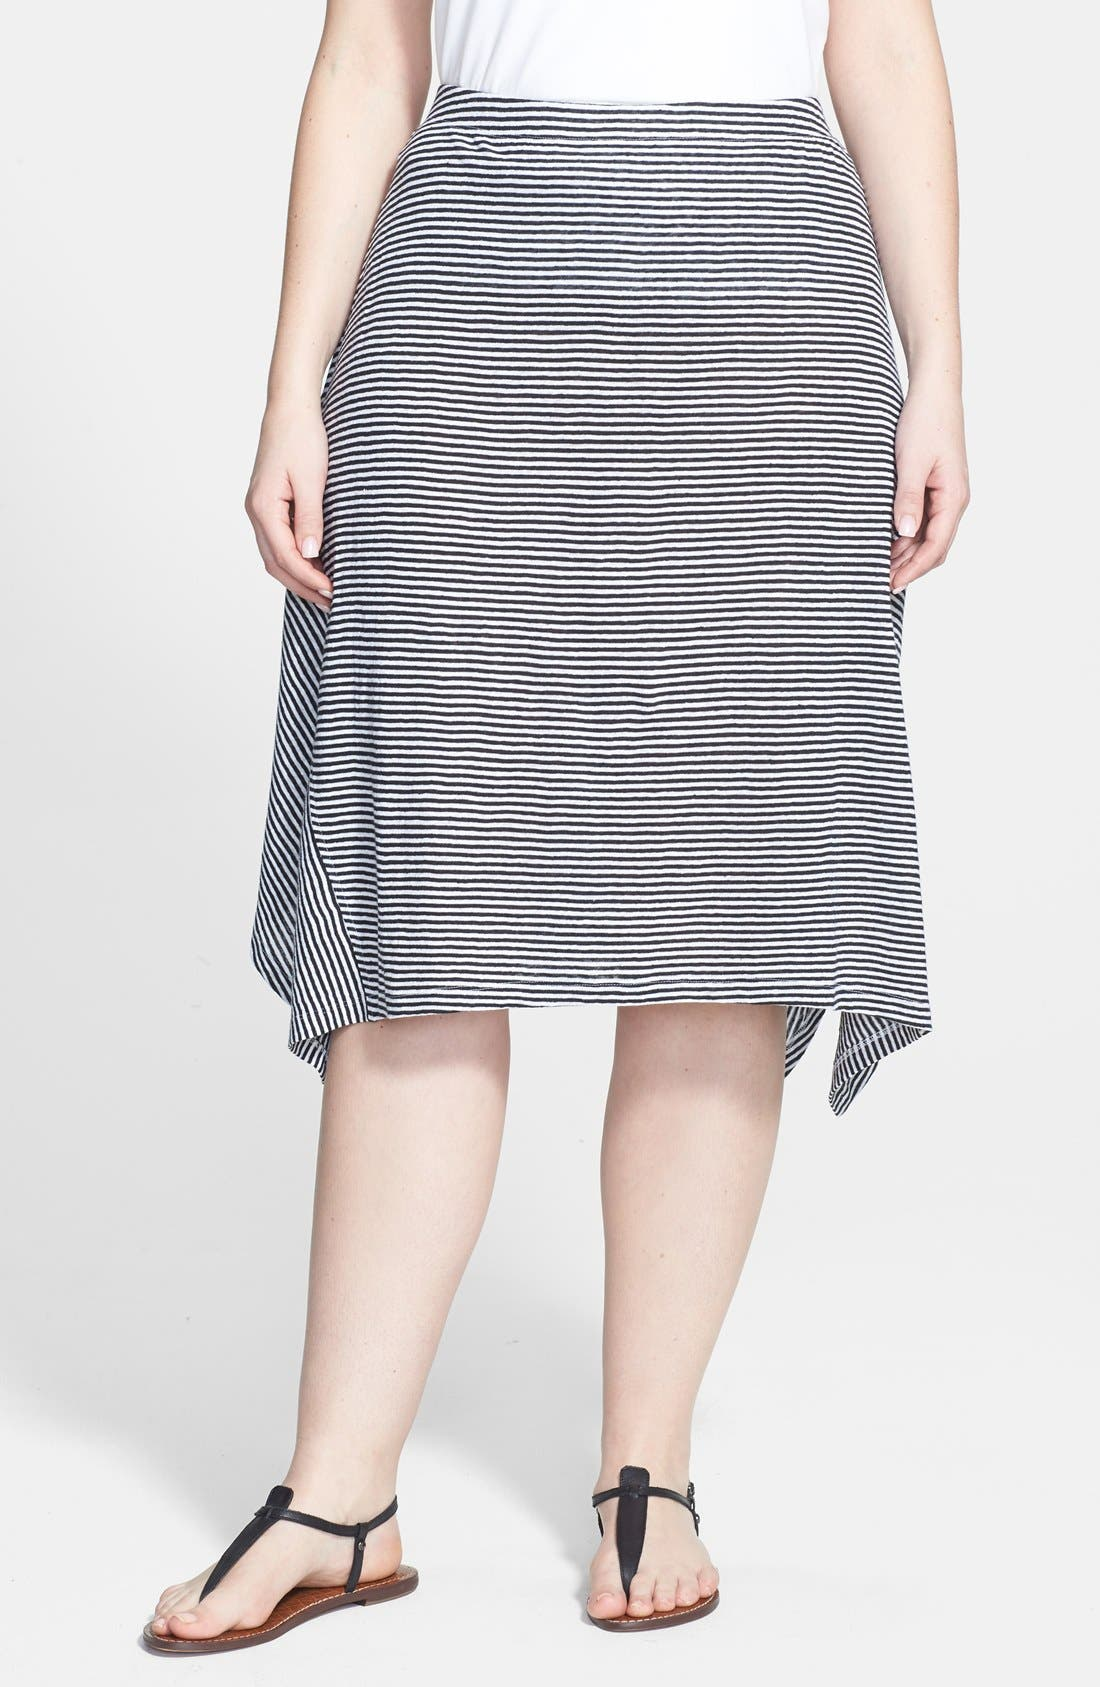 Alternate Image 1 Selected - Eileen Fisher Stripe Organic Linen Knit Skirt (Plus Size)